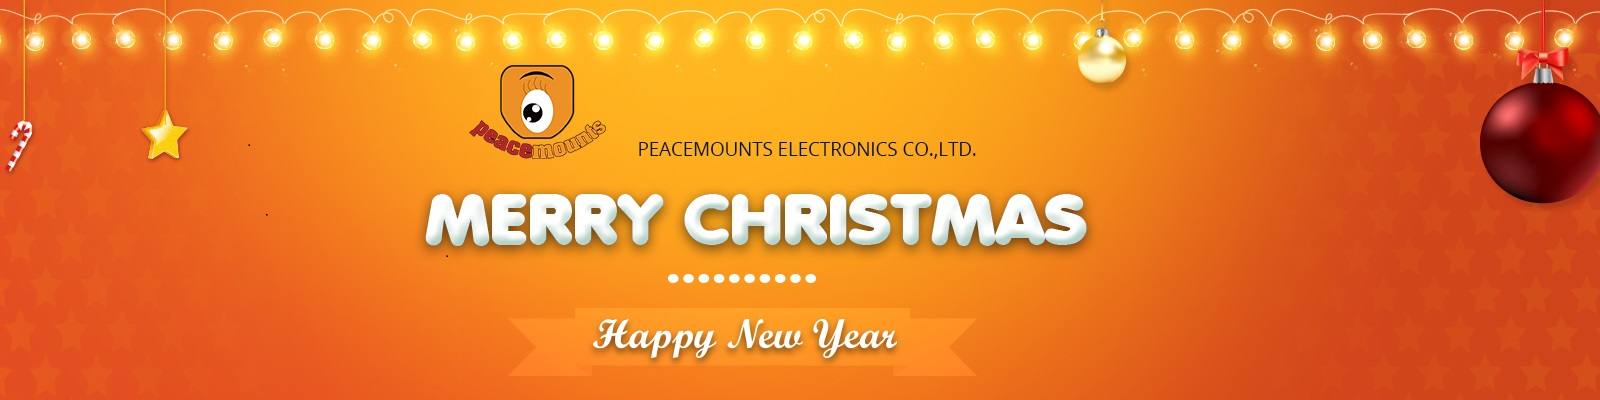 Peacemounts wishes Christmas Day